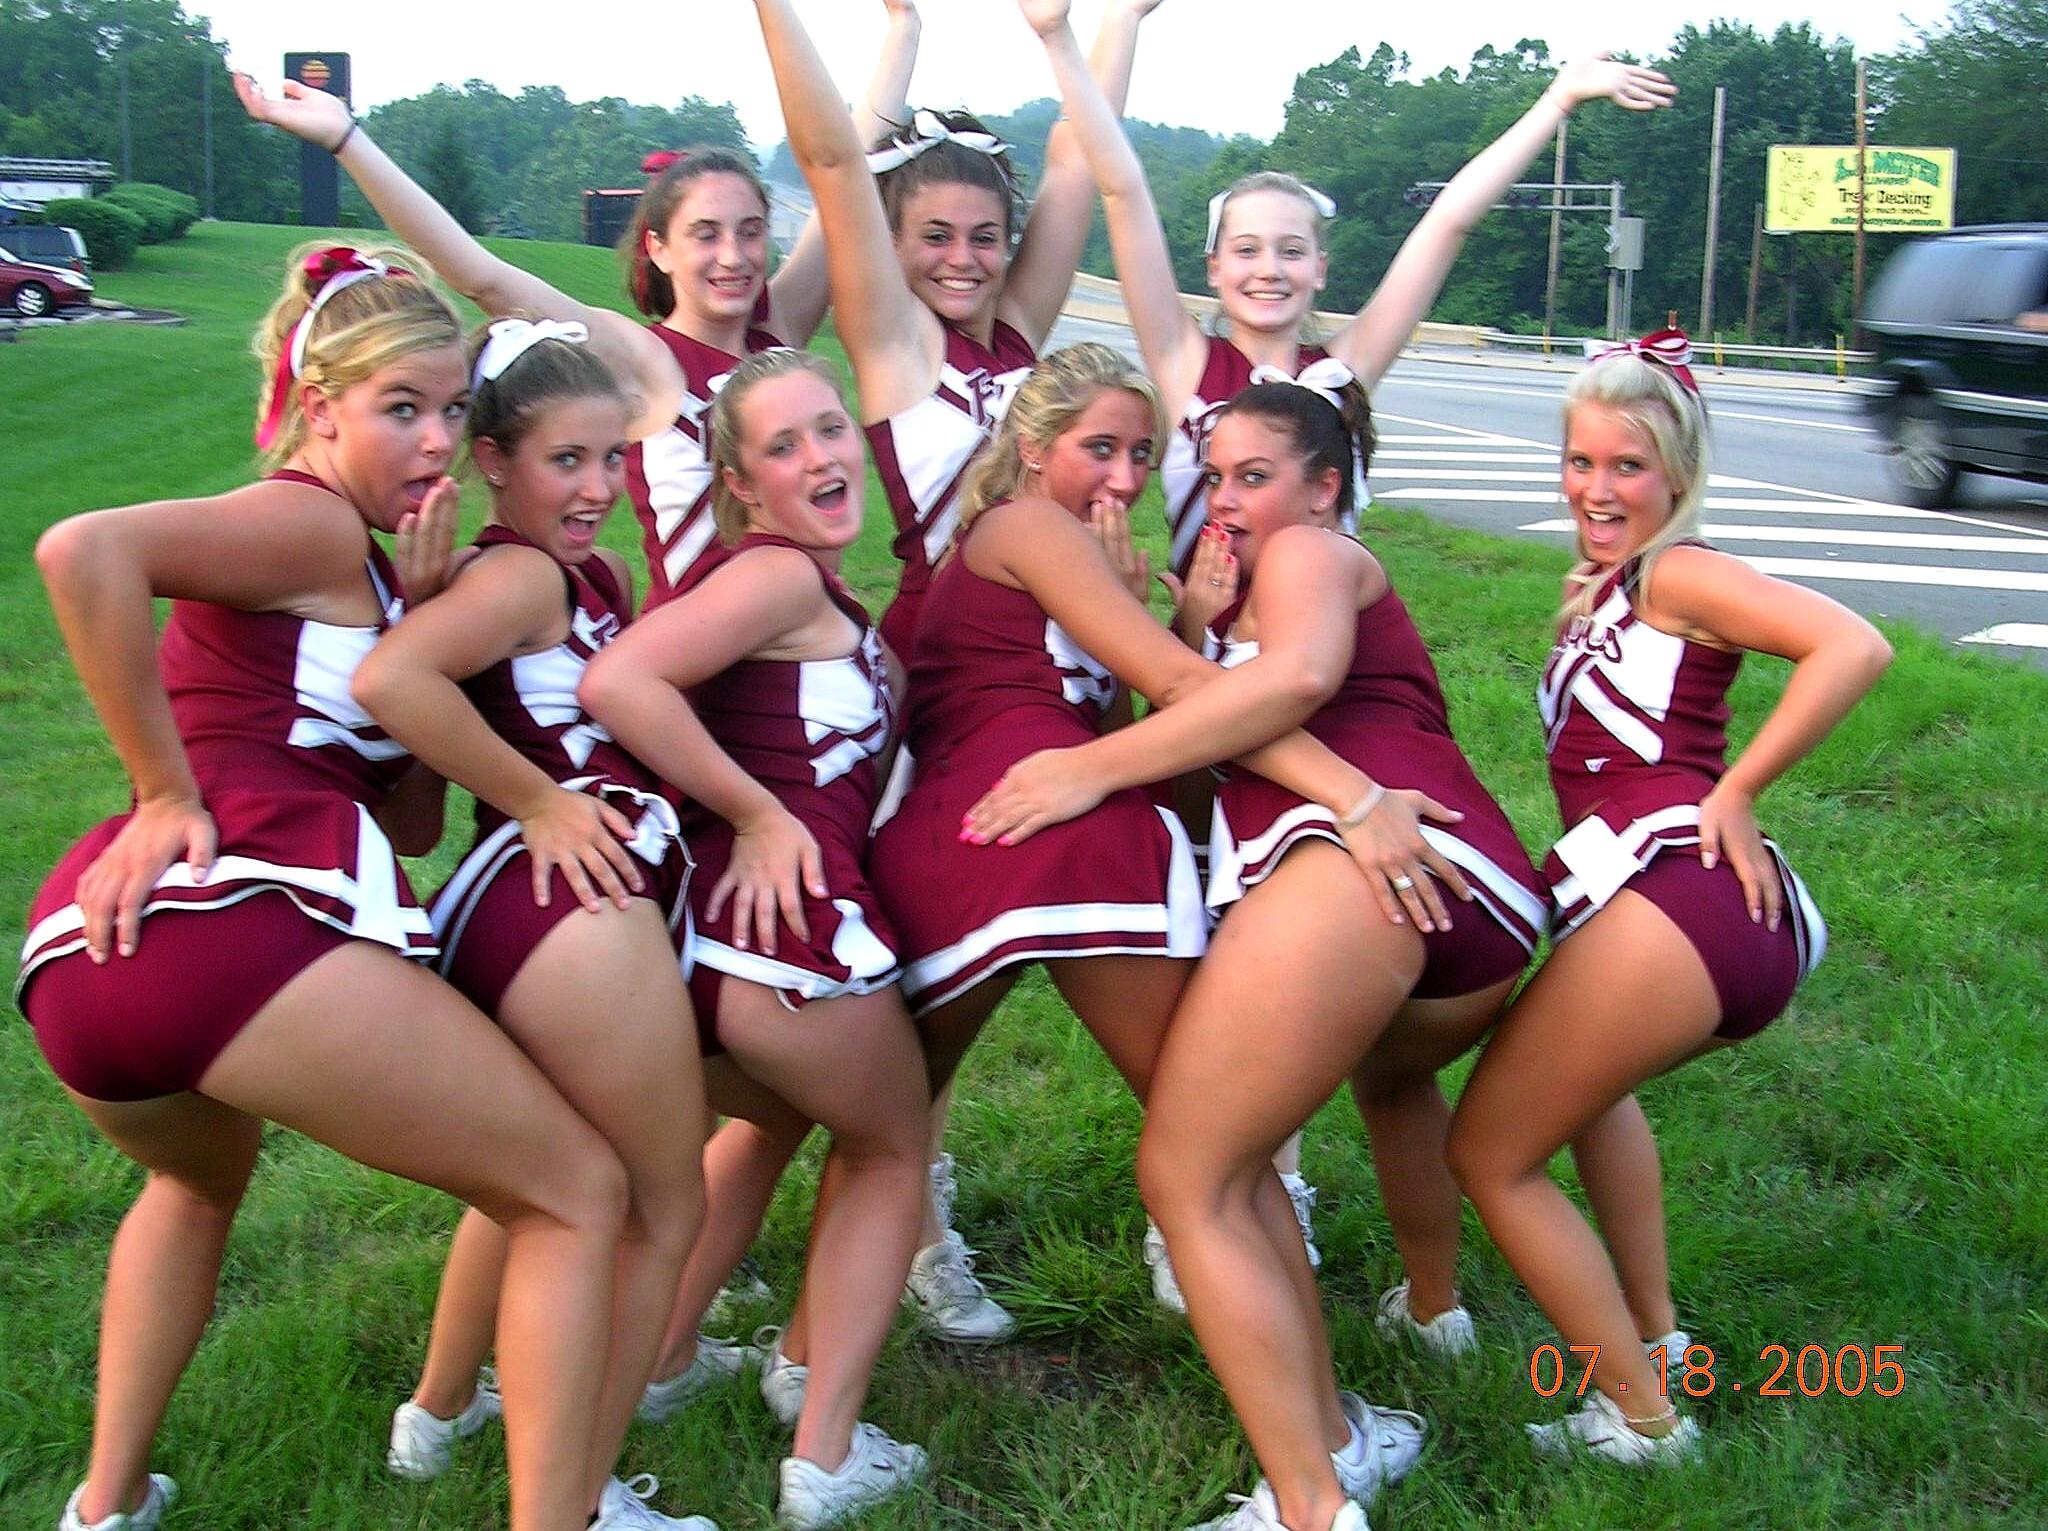 Cheerleader Butts  Upskirts - Spankingblogg - Chiefs -7641